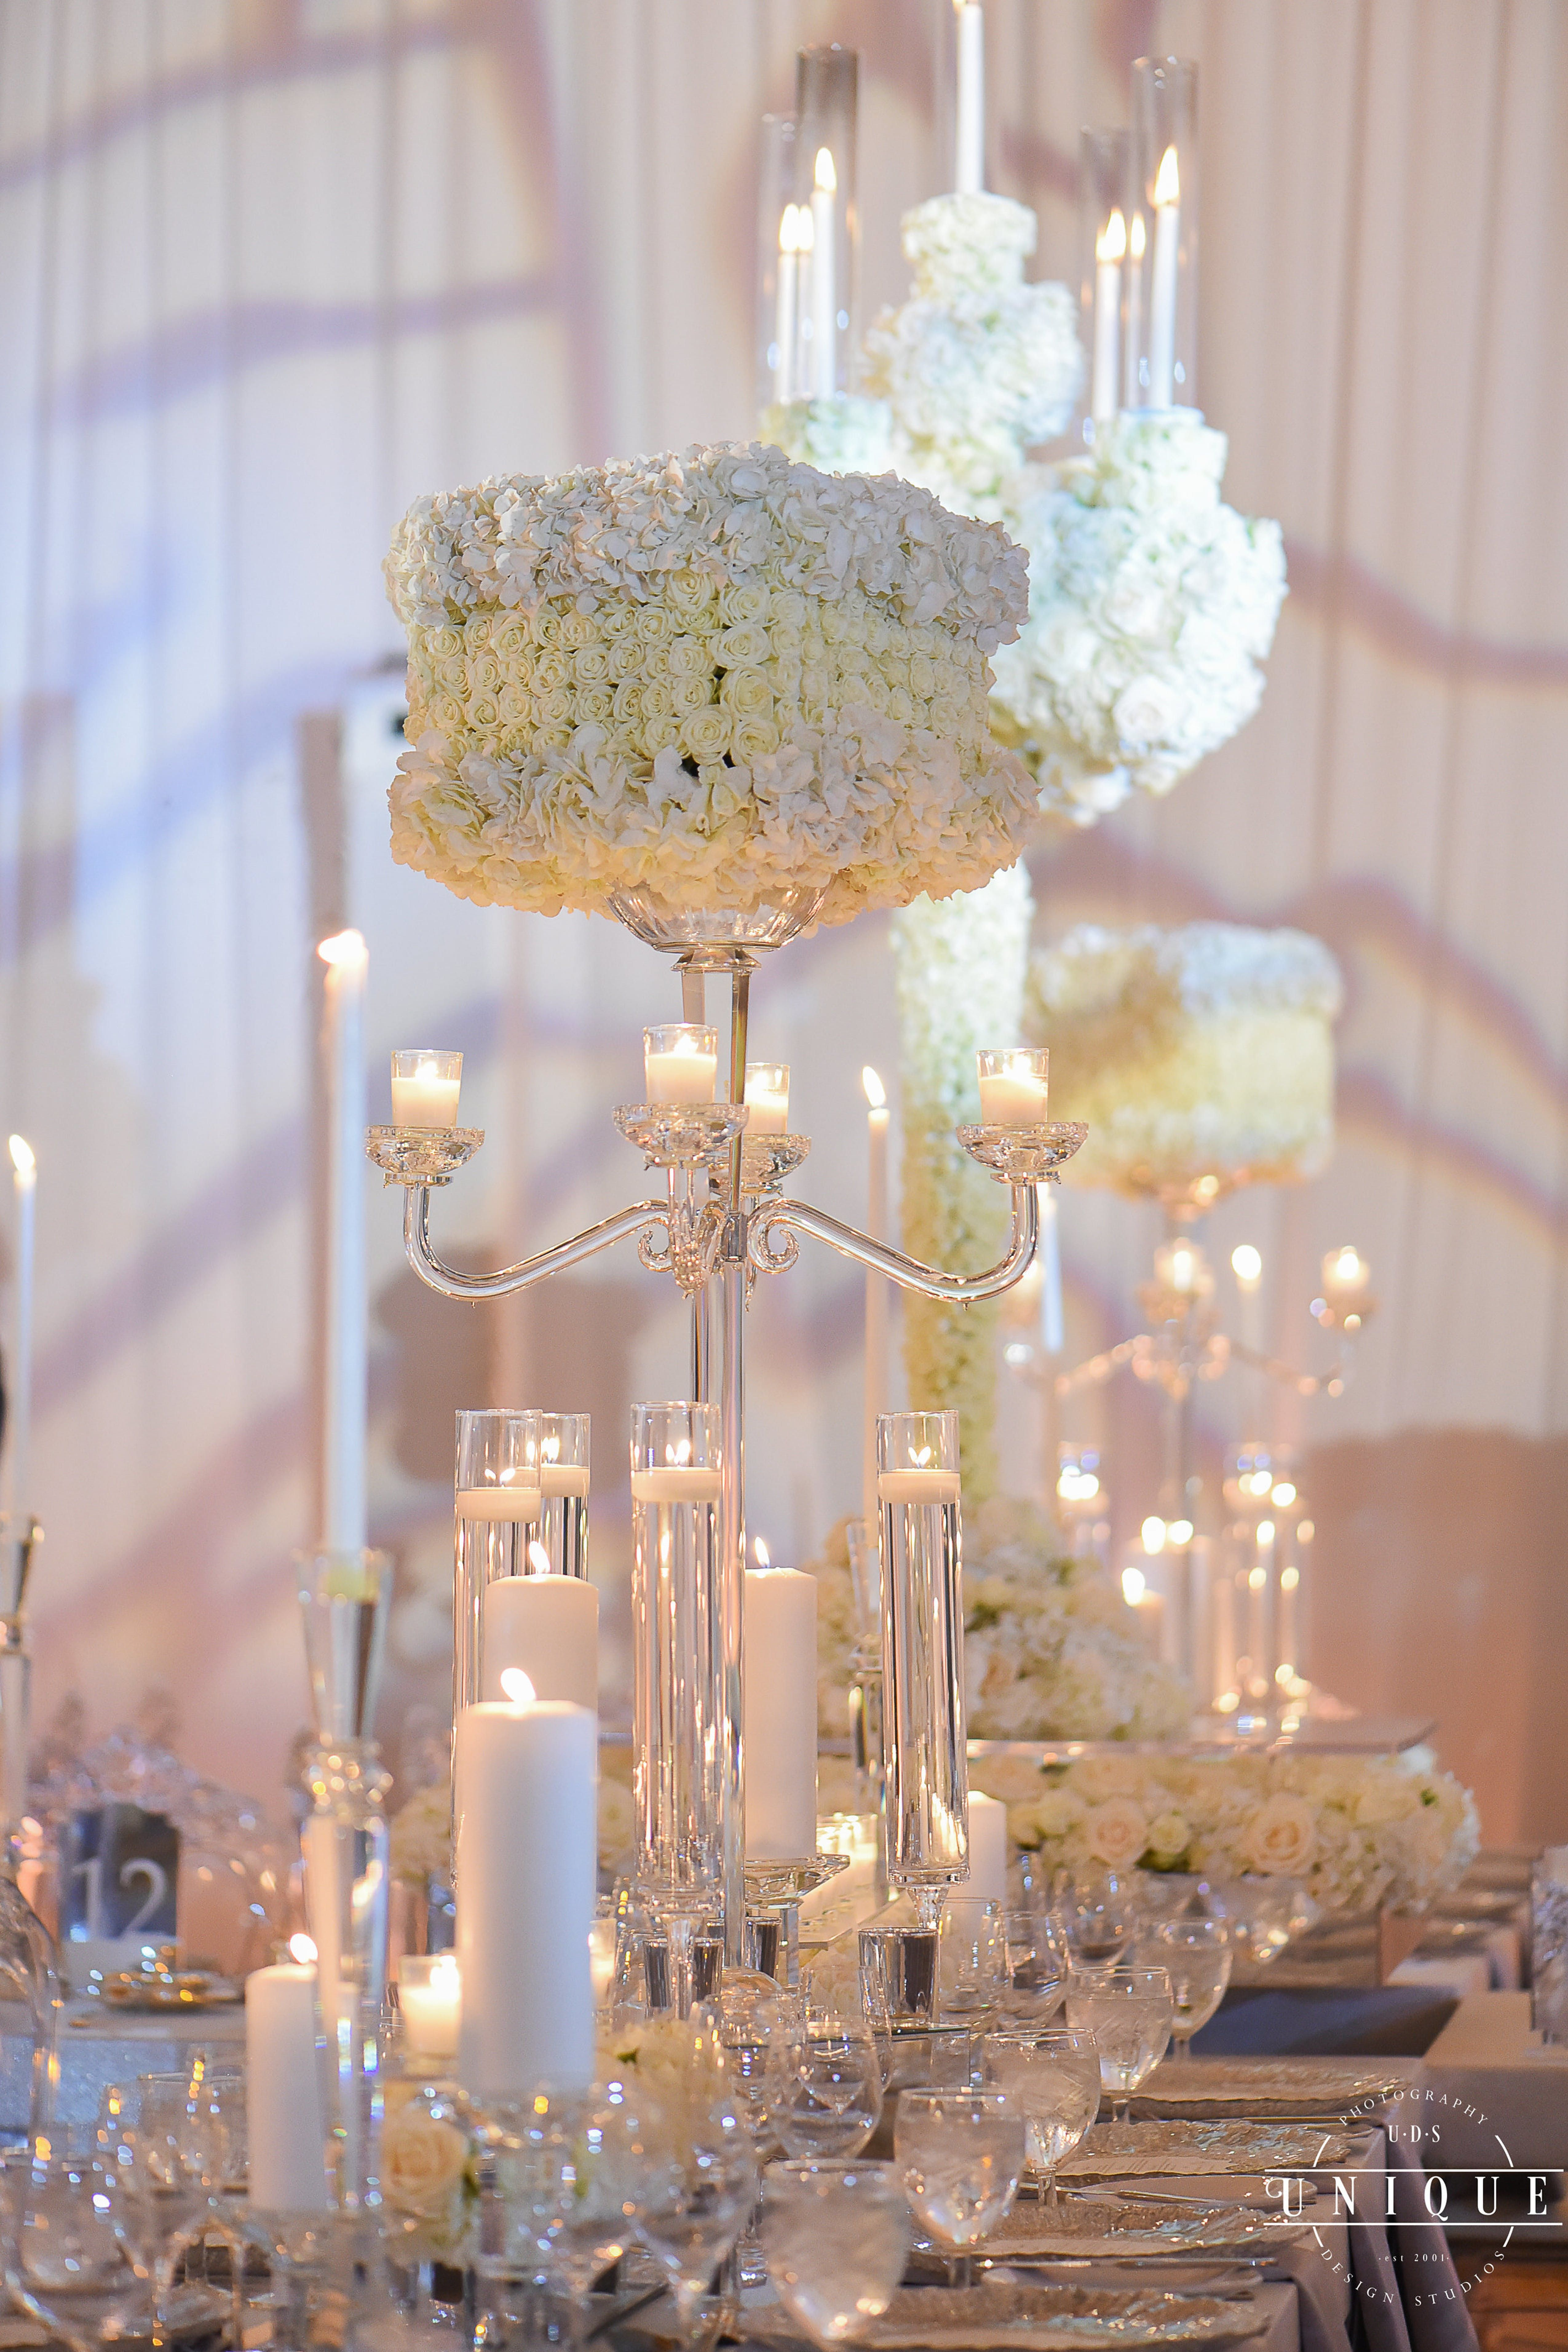 White Pink And Green Dreamy Wedding Party Rentals And Decor By Gilded Group Decor Miami Eve Luxury Wedding Centerpieces Wedding Centerpieces Floral Wedding